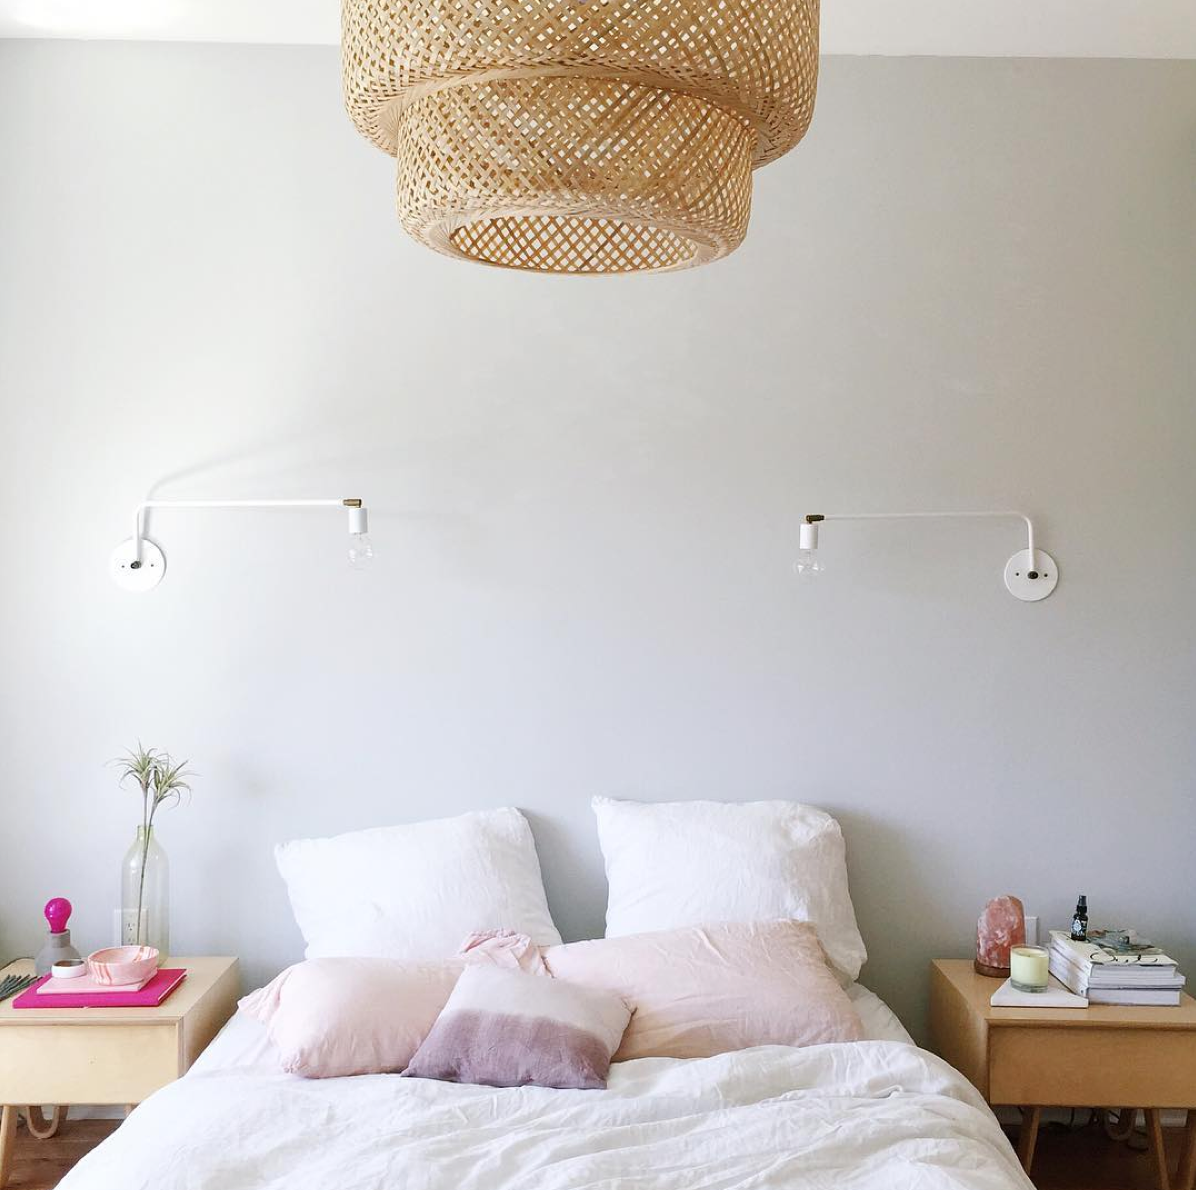 The bedroom of Bri Emery of Design Love Fest. Plain wall with sconces and pale pops of pink. Wicker hanging pendant.